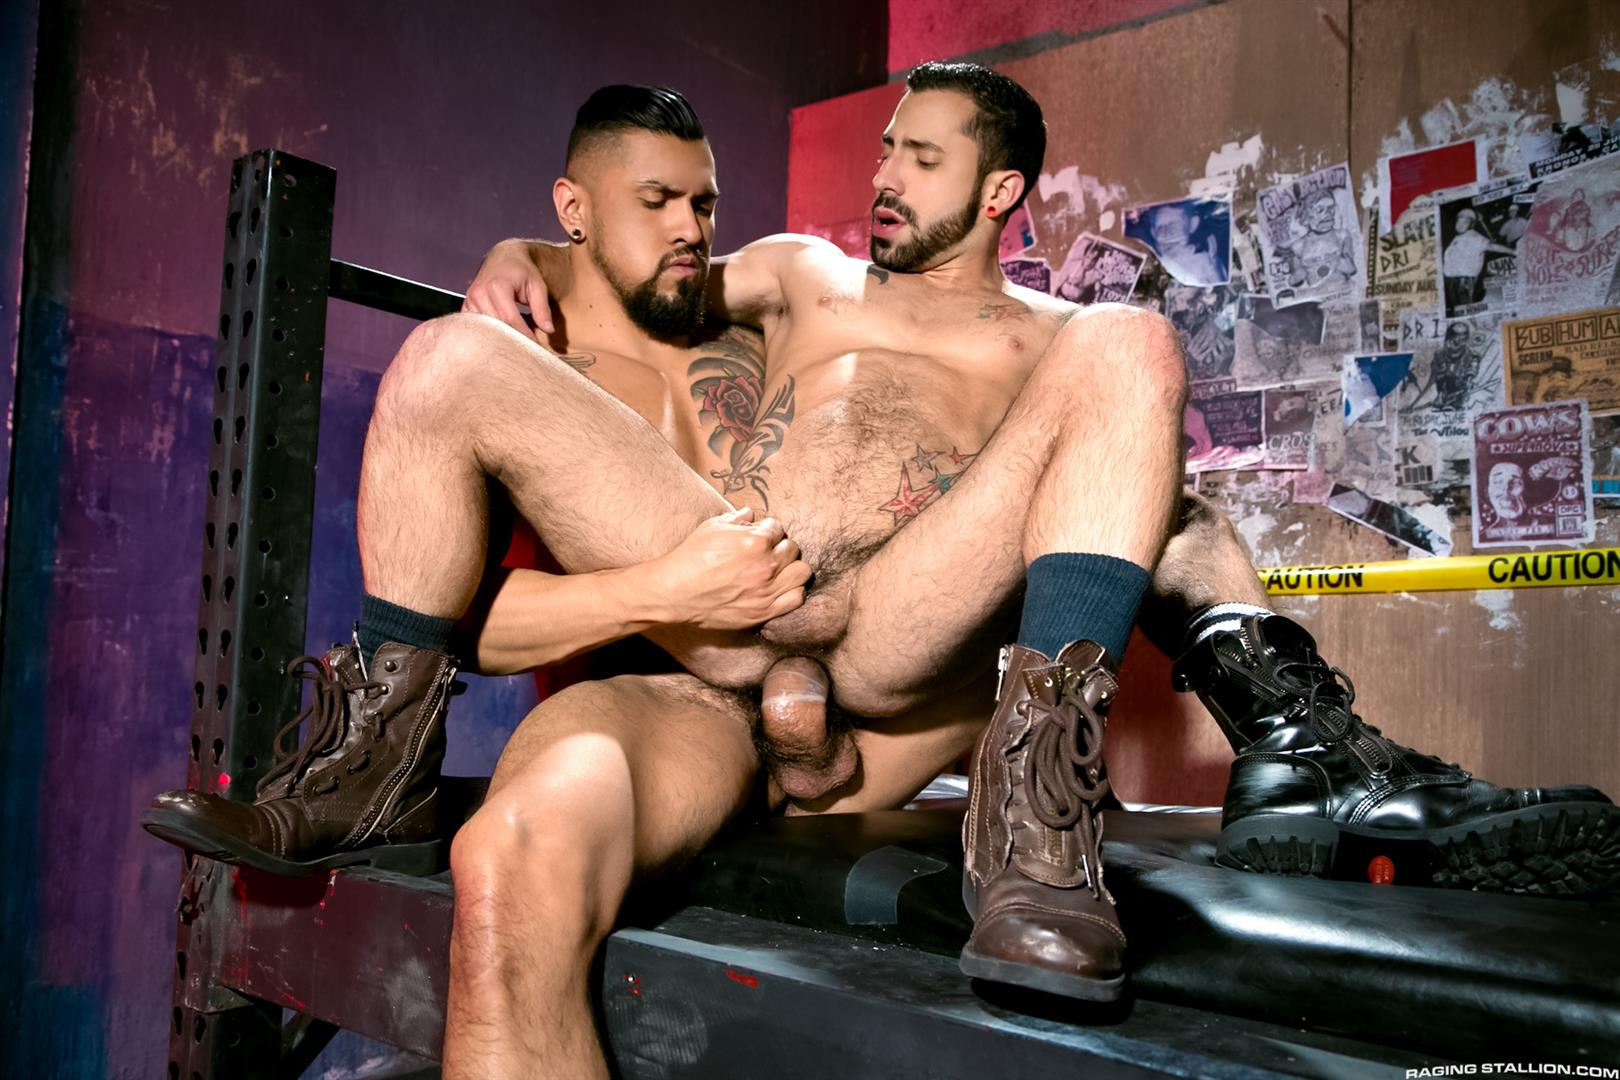 Raging Stallion Boomer Banks and Nick Cross Huge Uncut Cock Fucking A Latino Ass Amateur Gay Porn 11 Boomer Banks Fucking Nick Cross With His Huge Uncut Cock